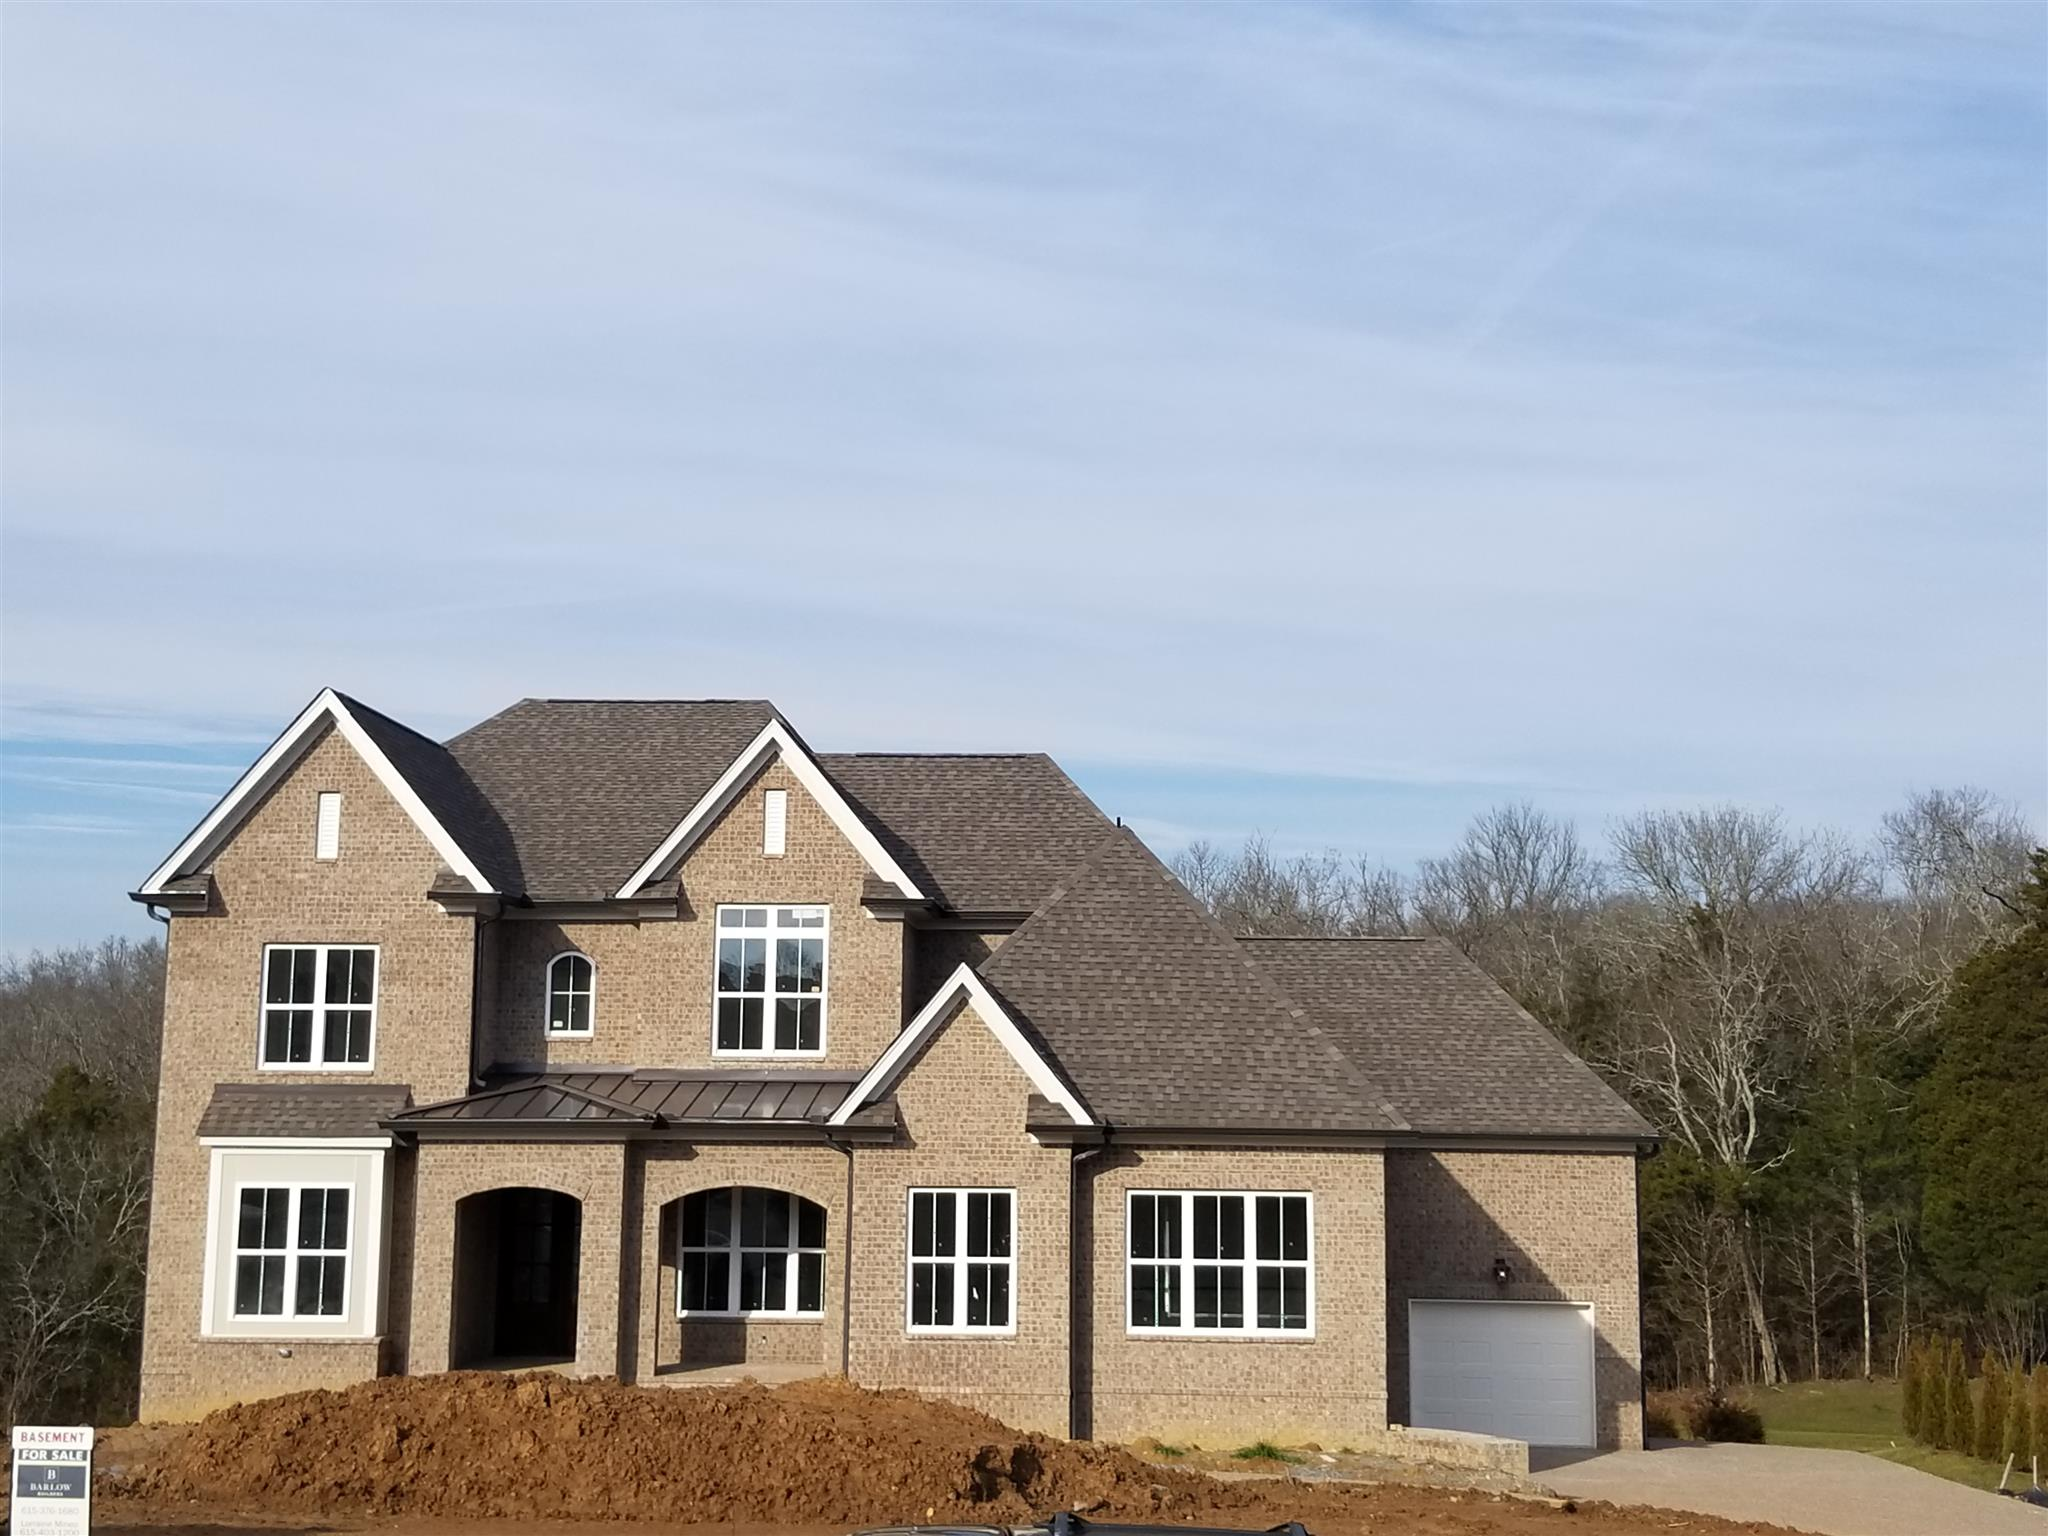 109 Watertown Dr., Lot 1009, Nolensville, Tennessee